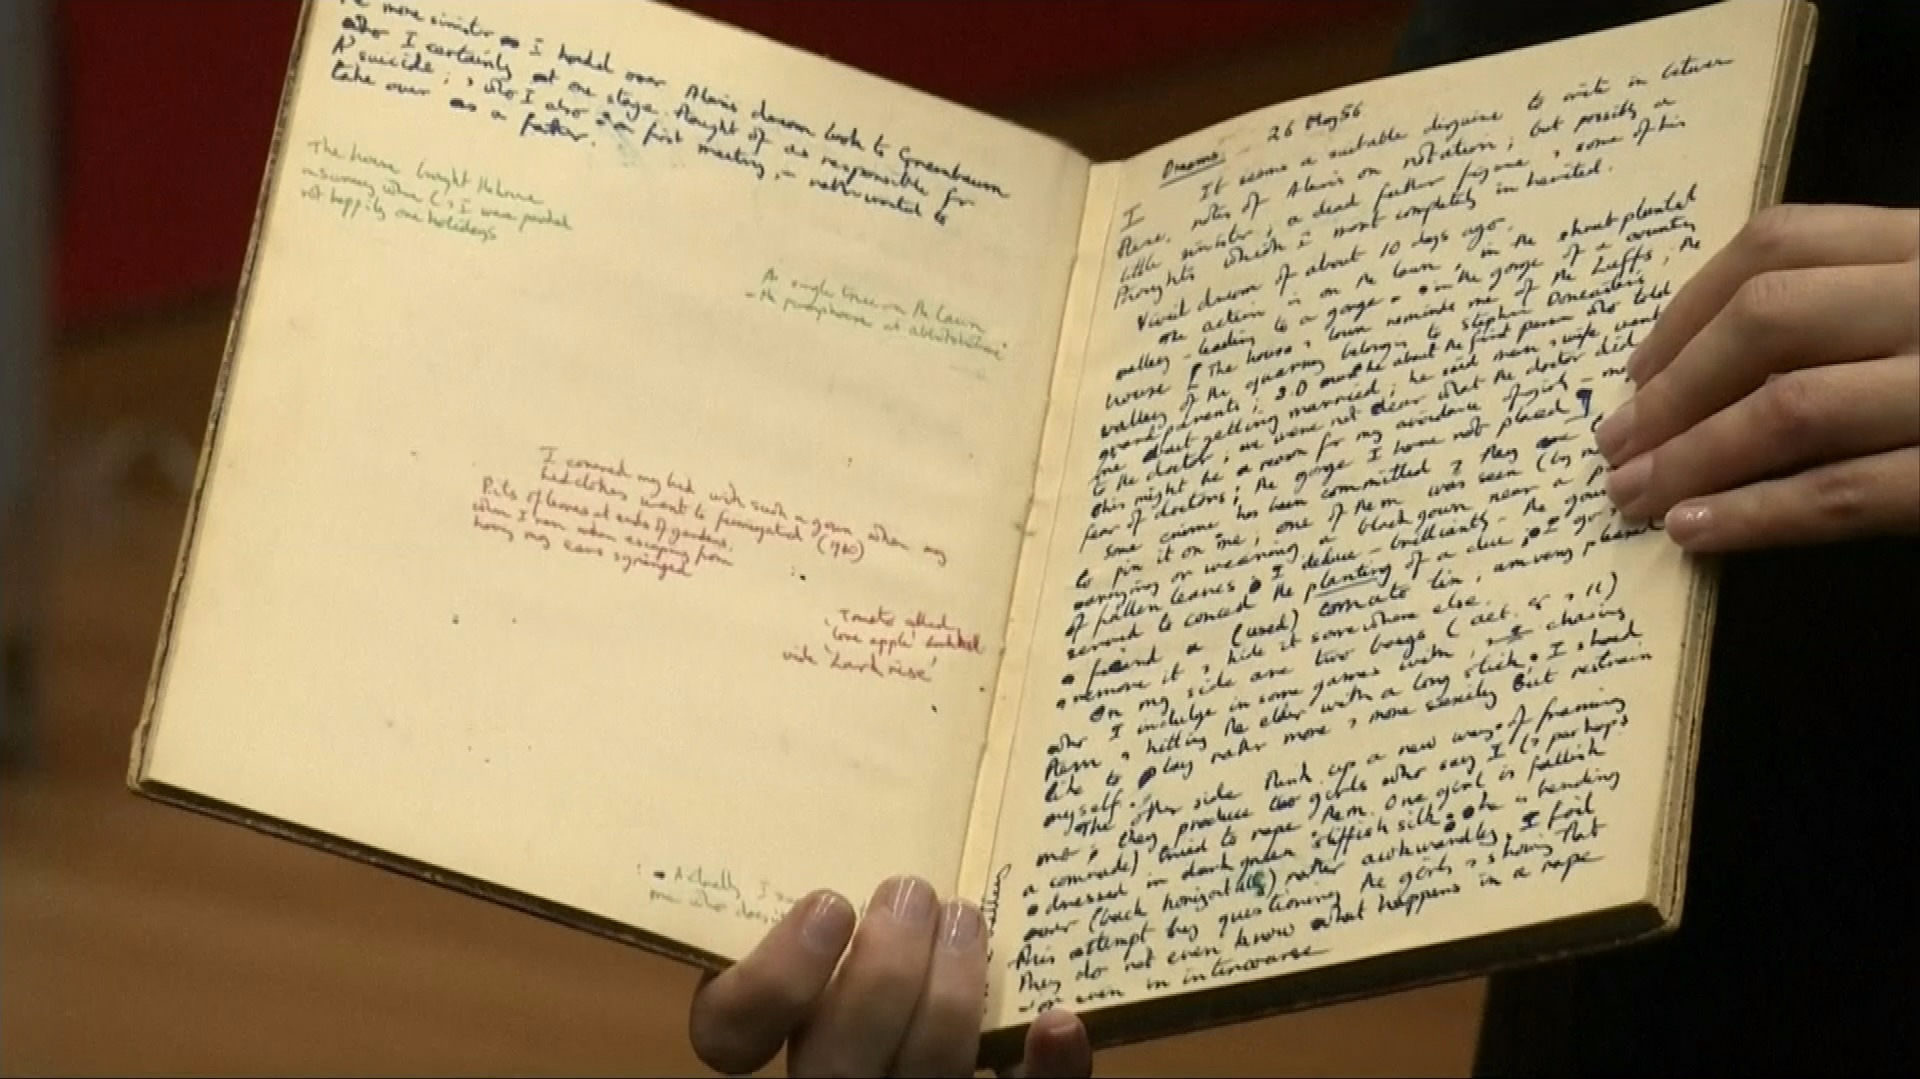 Calendar Notebook 2015 : Alan turing s personal notebook fetches just over £